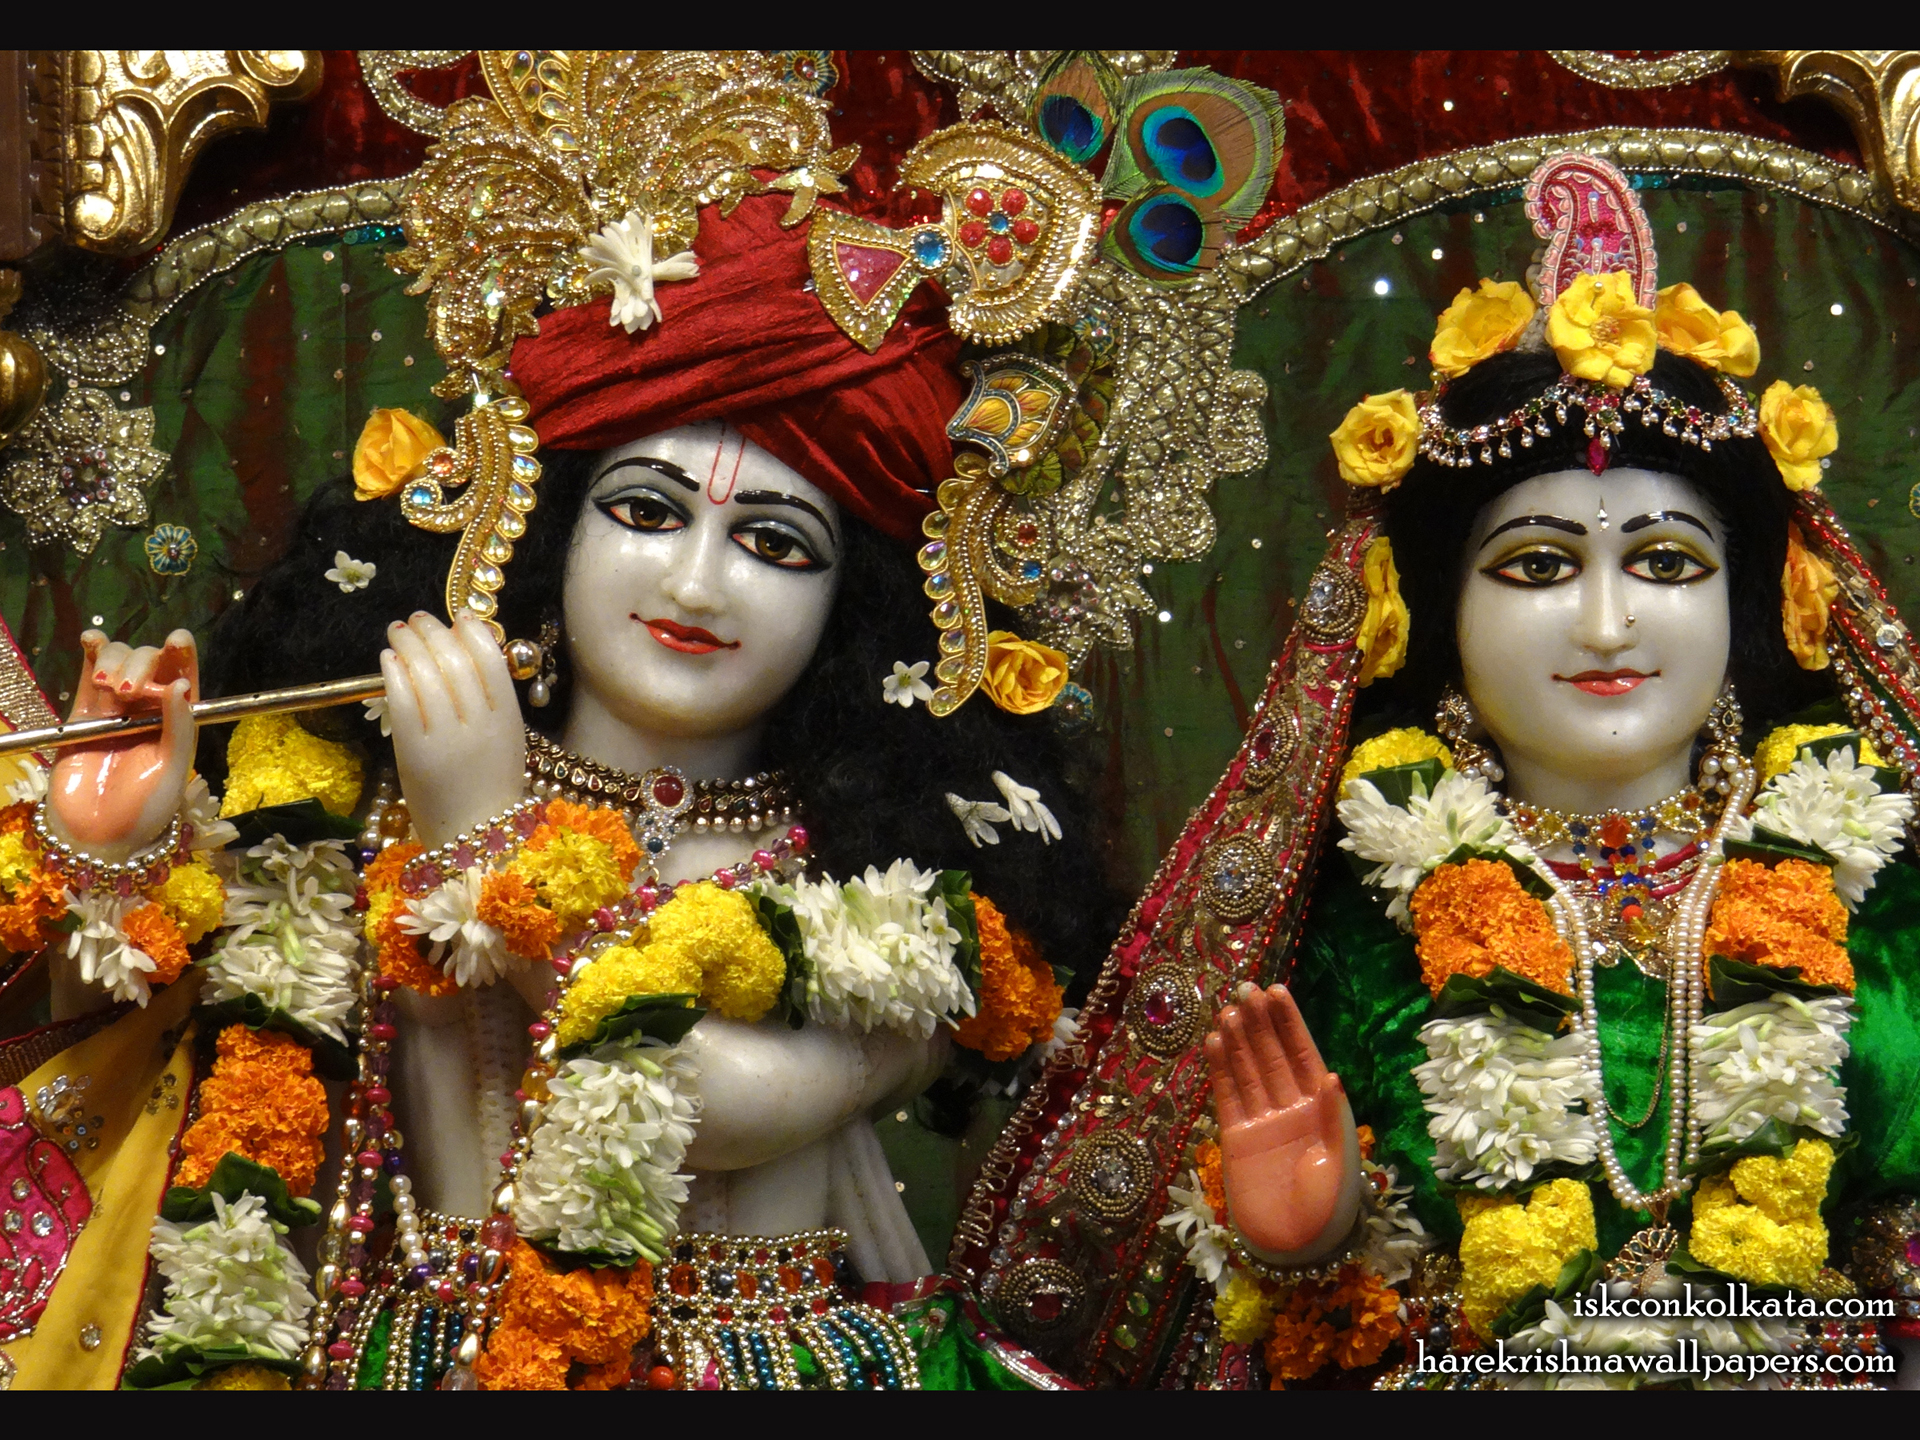 Sri Sri Radha Govinda Close up Wallpaper (006) Size 1920x1440 Download